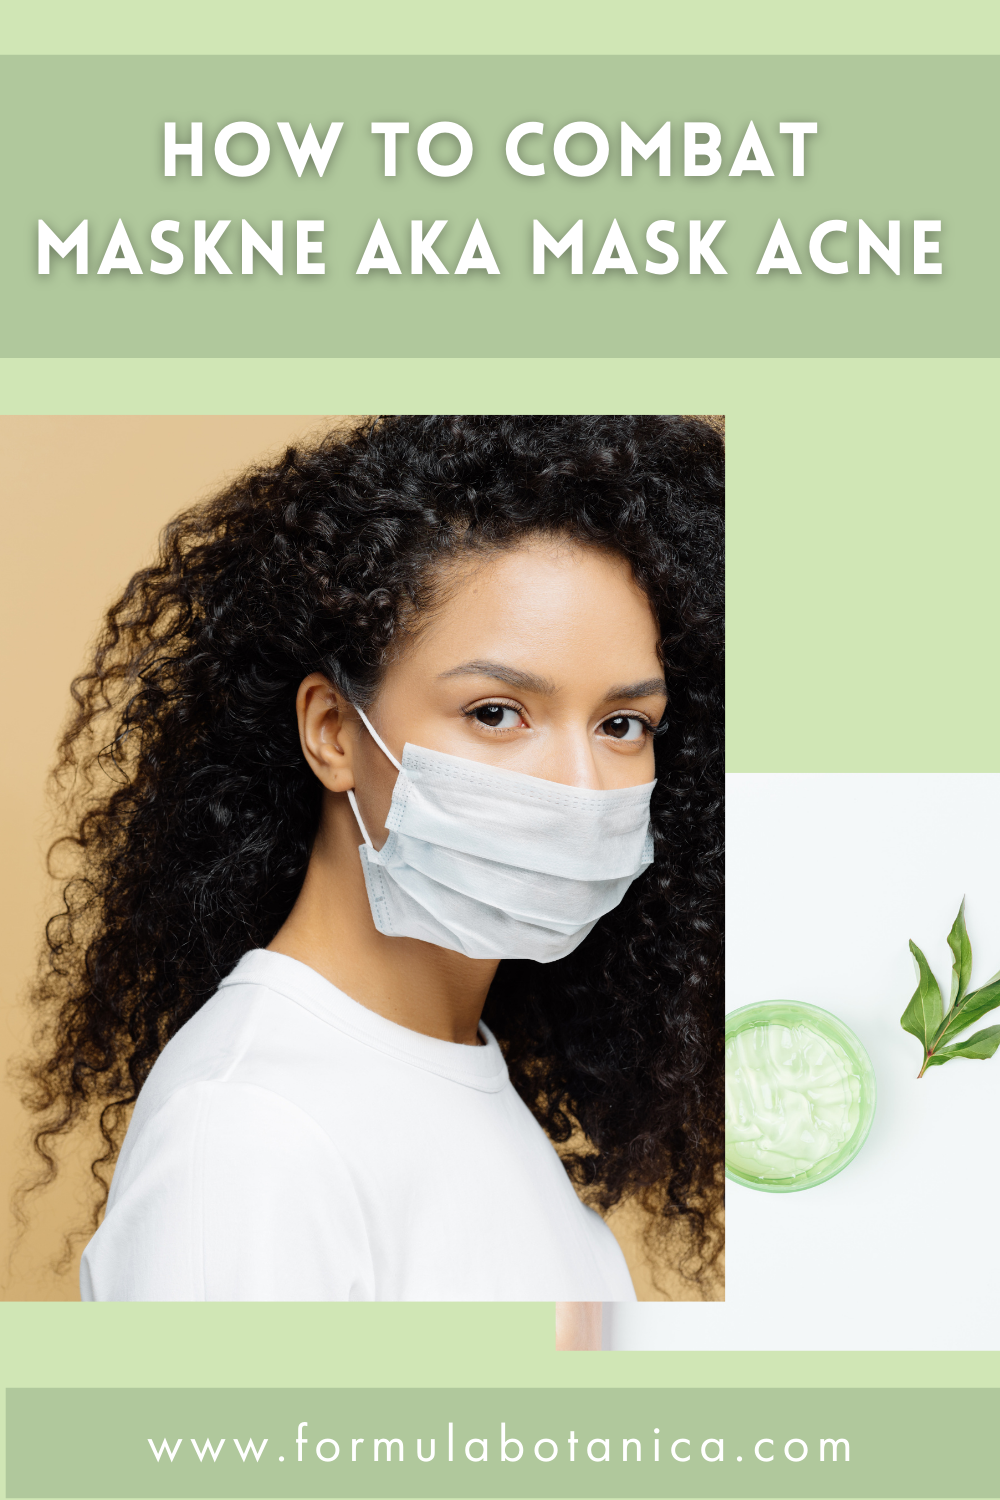 Maskne - how to get rid of mask acne